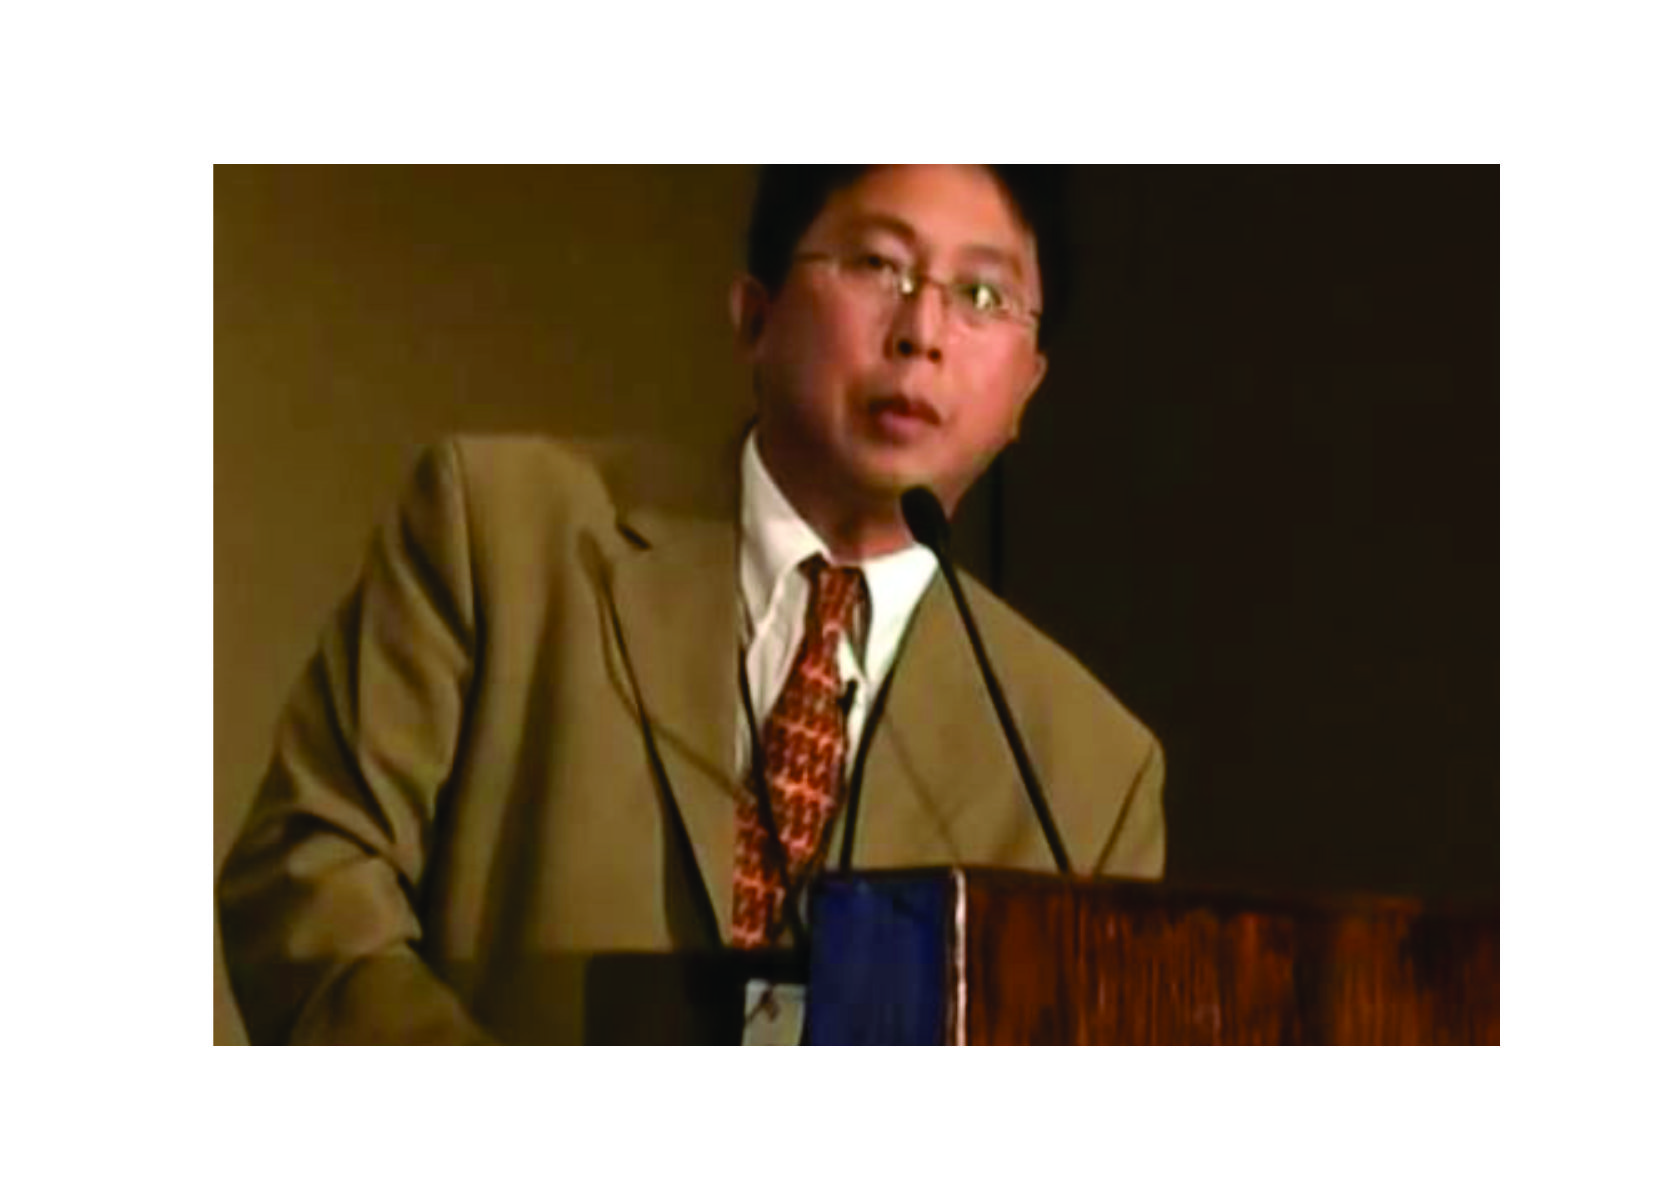 Dr. Willie Soon versus the climate apocalypse